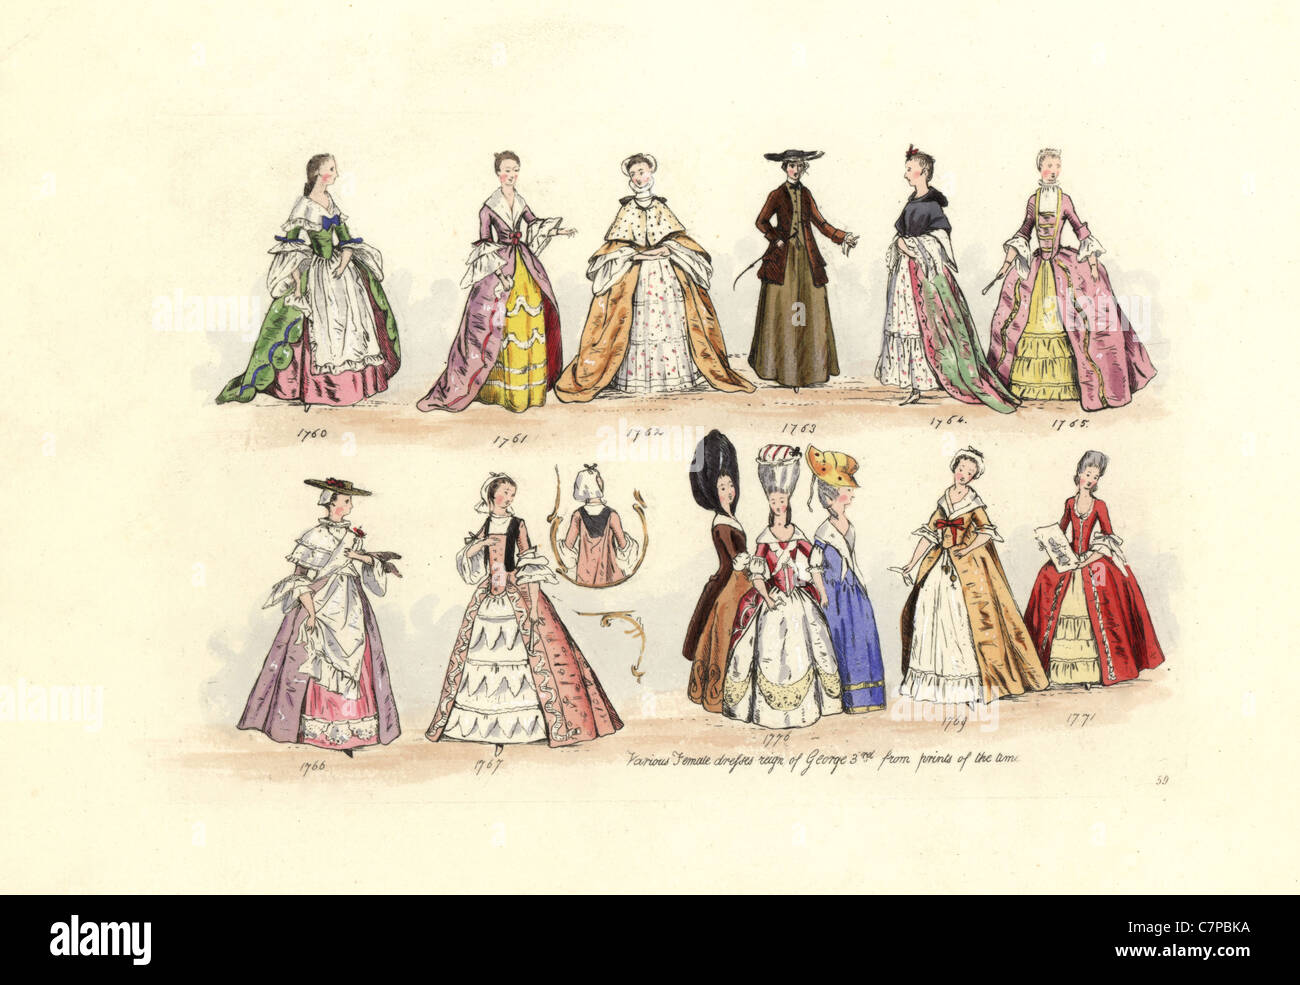 Women's fashion from 1760-1771, from prints in Ladies' Pocket Books,  Almanacks, etc.